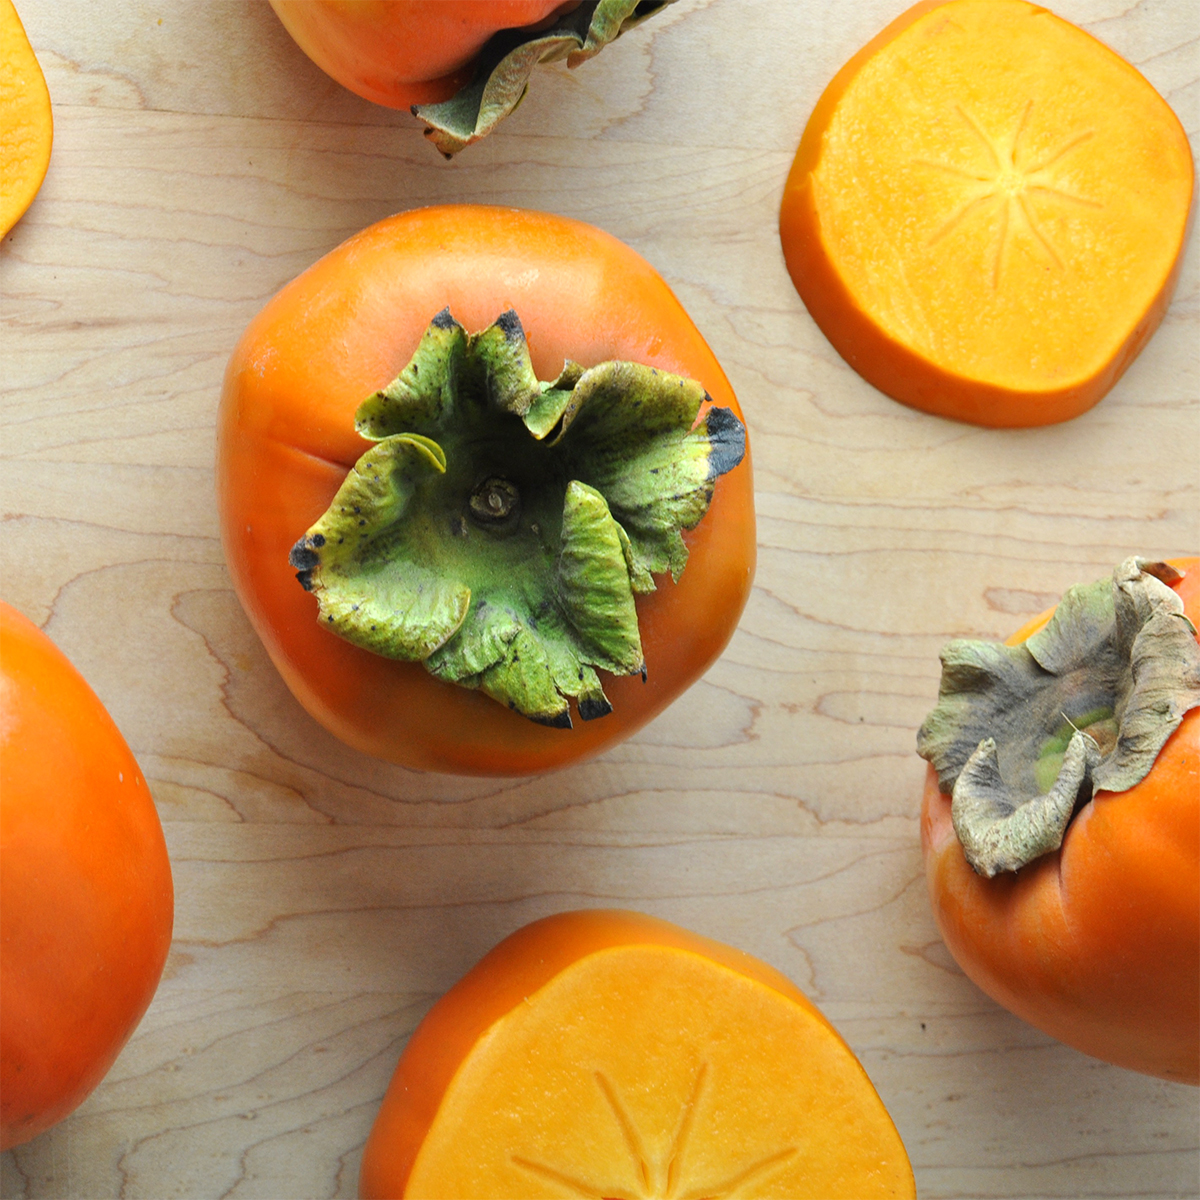 persimmon differences